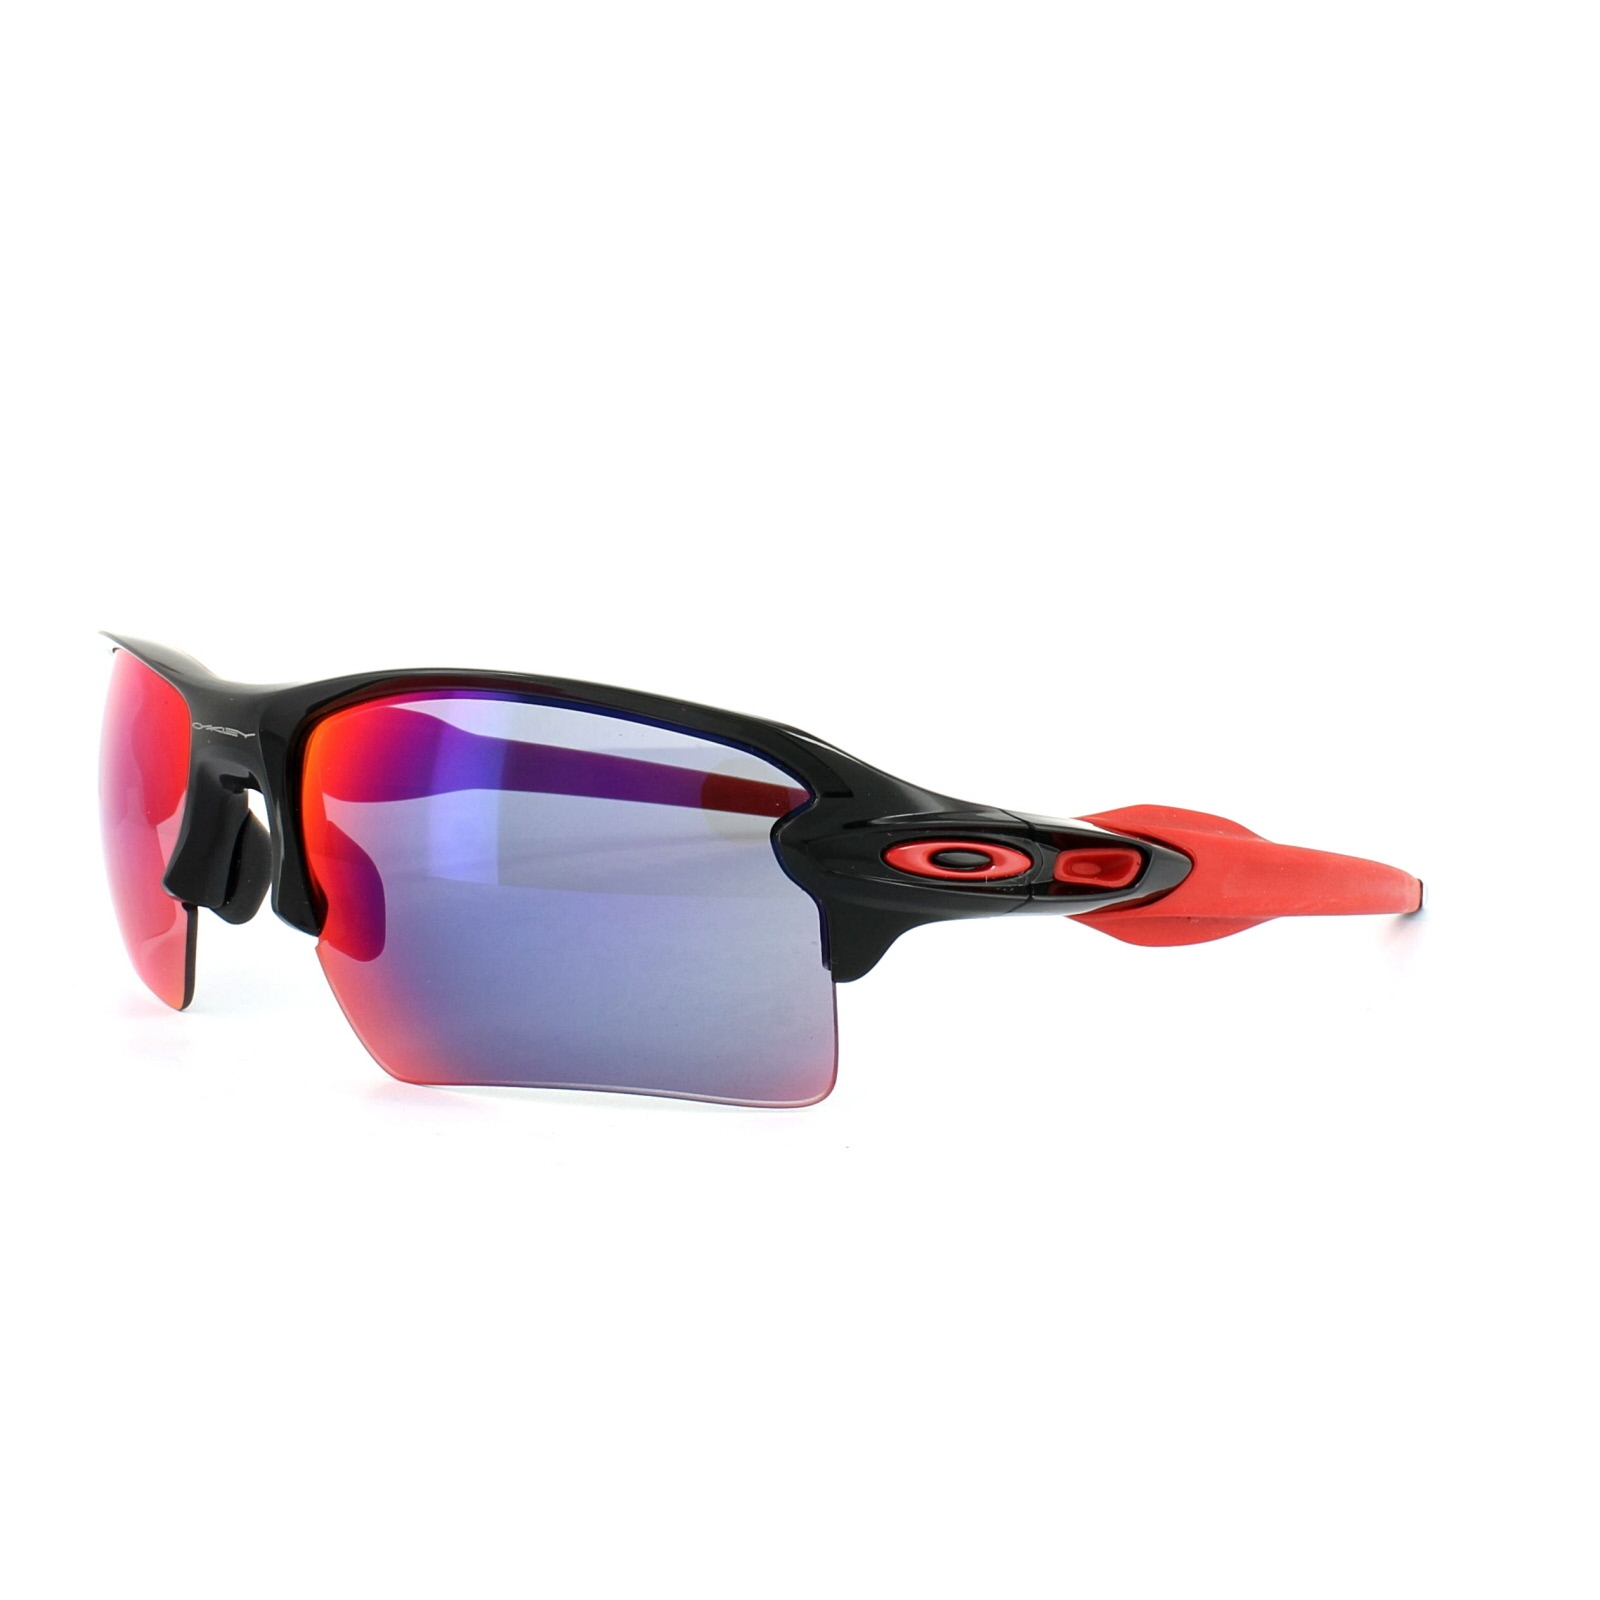 7a7e3e5e59 Sentinel Oakley Sunglasses Flak 2.0 XL OO9188-24 Polished Black Positive  Red Iridium. Sentinel Thumbnail 2